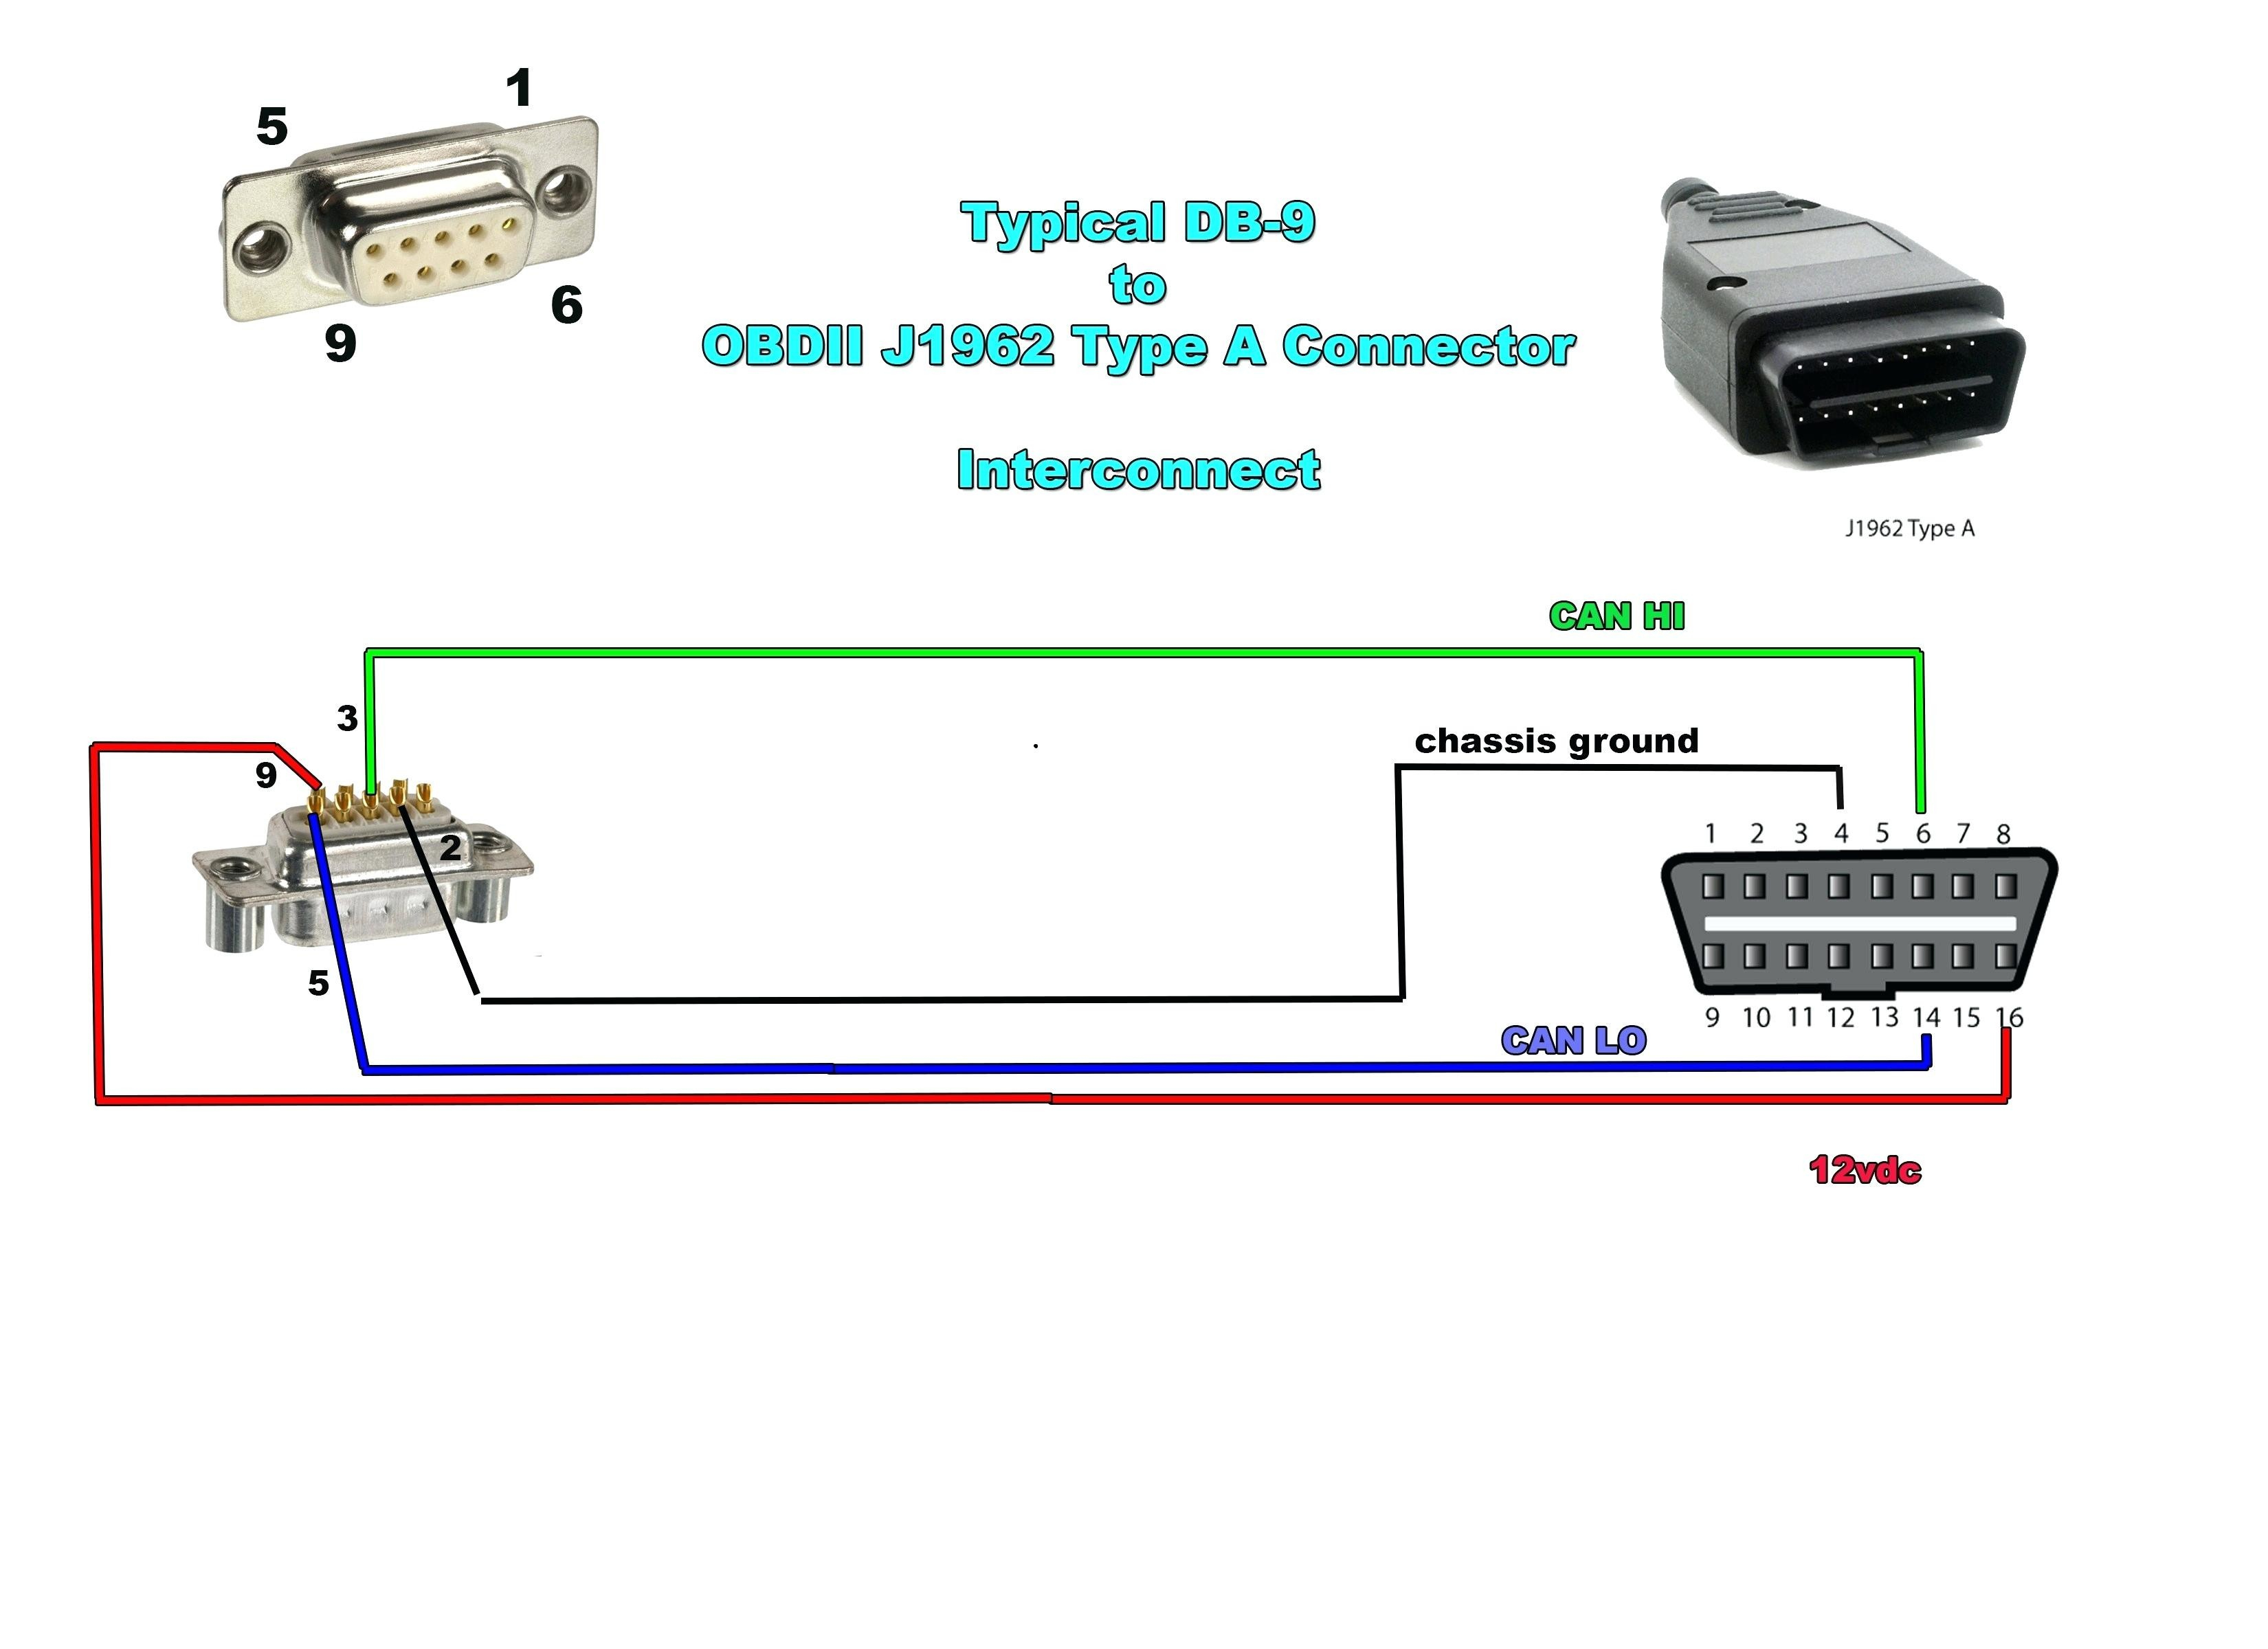 Obd2 Connector To Usb Wiring Diagram | Wiring Diagram - Usb To Obdii Wiring Diagram